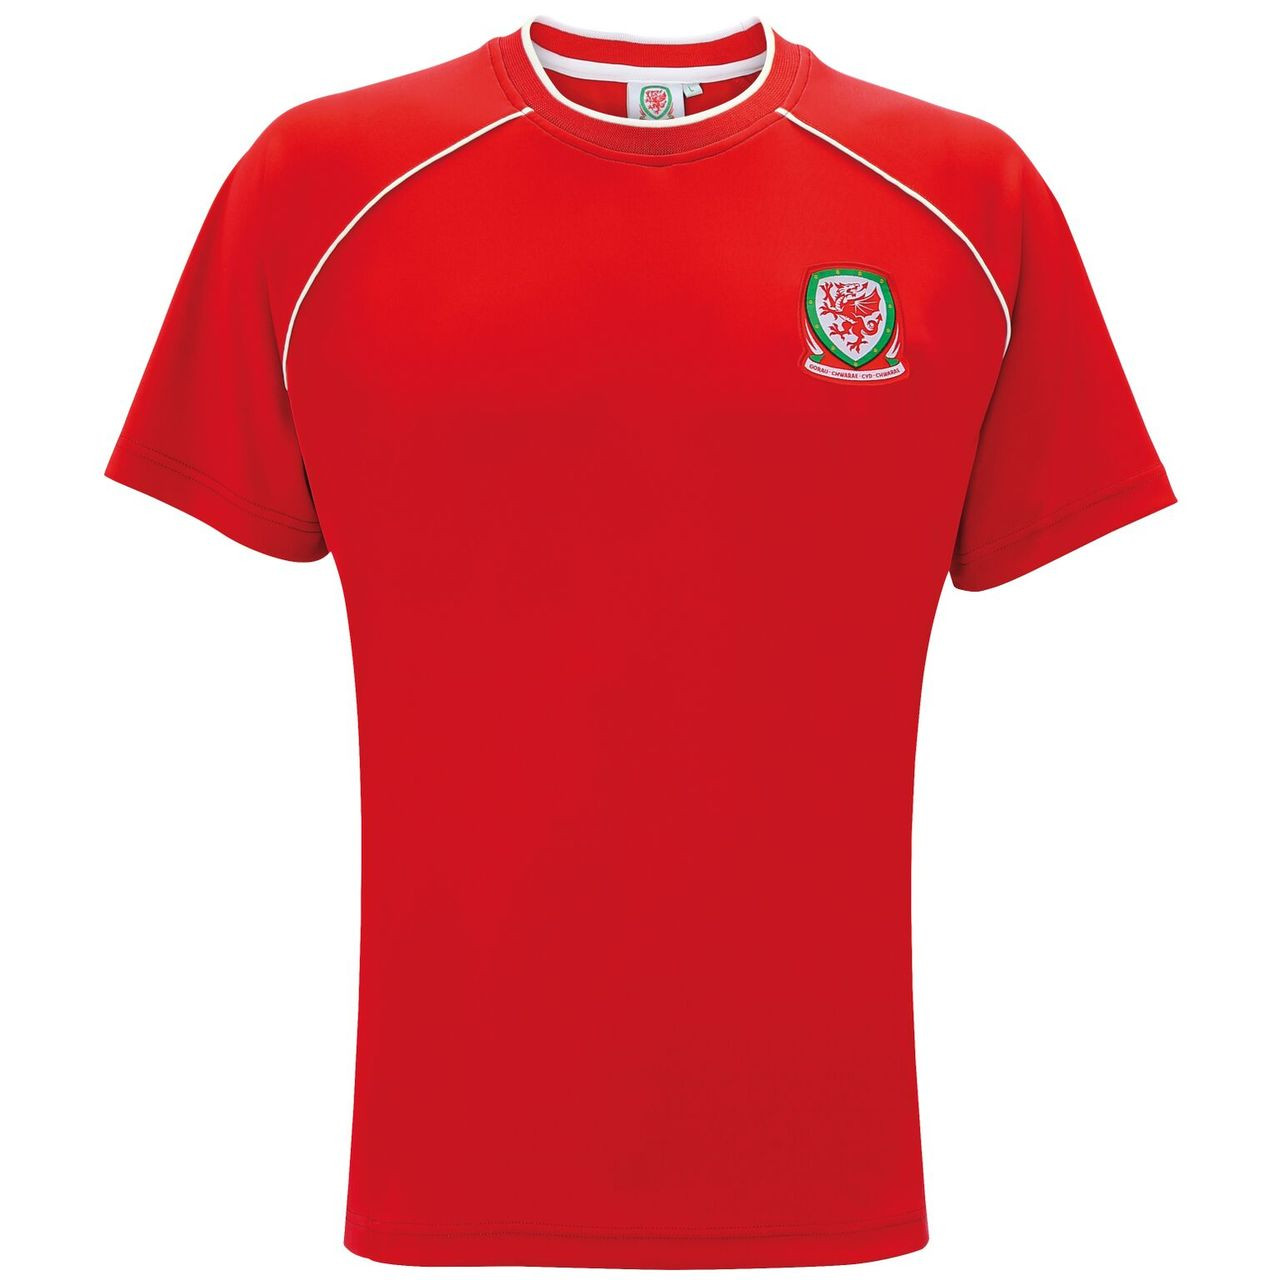 679a4a56836 Home · FOOTBALL MERCHANDISE · WALES FC; Wales Adults T-Shirts. OF980SOS.  OF980SOS. Click to enlarge